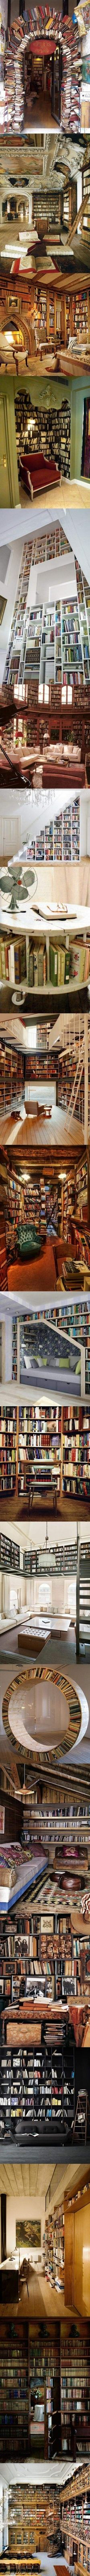 One day I'll have one of you a #library in my home.